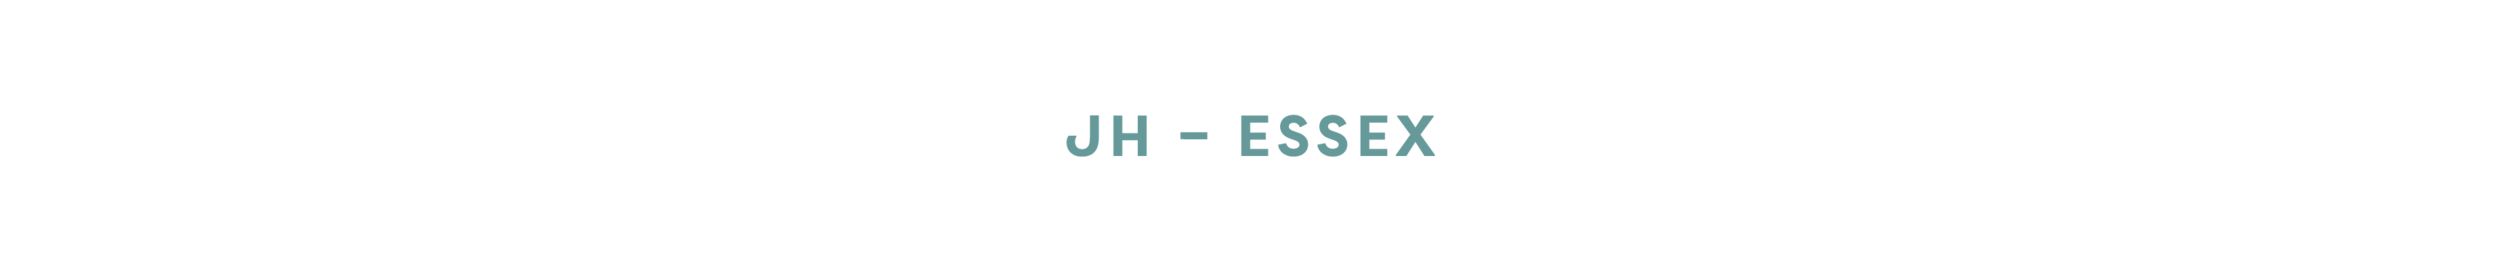 JH – Essex.png